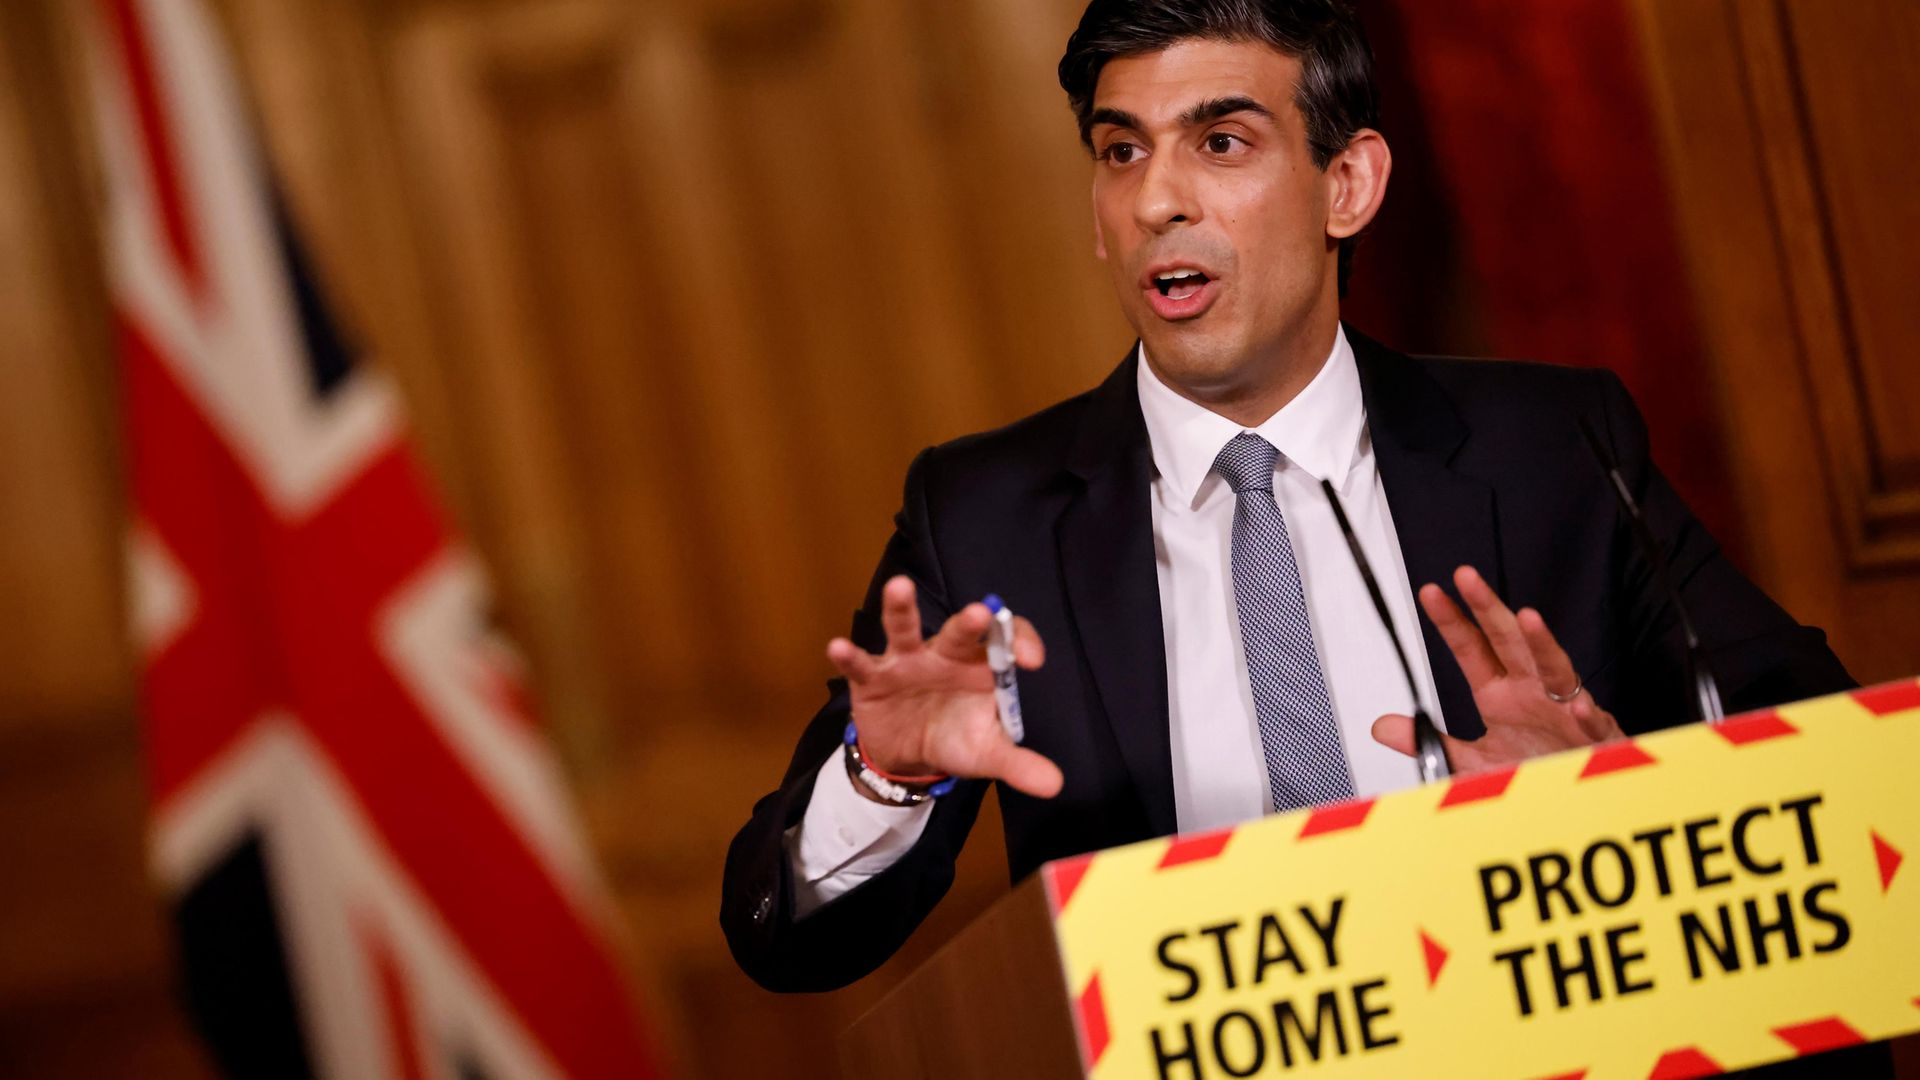 Chancellor Rishi Sunak holds a Budget press conference on March 3, 2021 - Credit: Photo by Tolga Akmen /WPA Pool/Getty Images